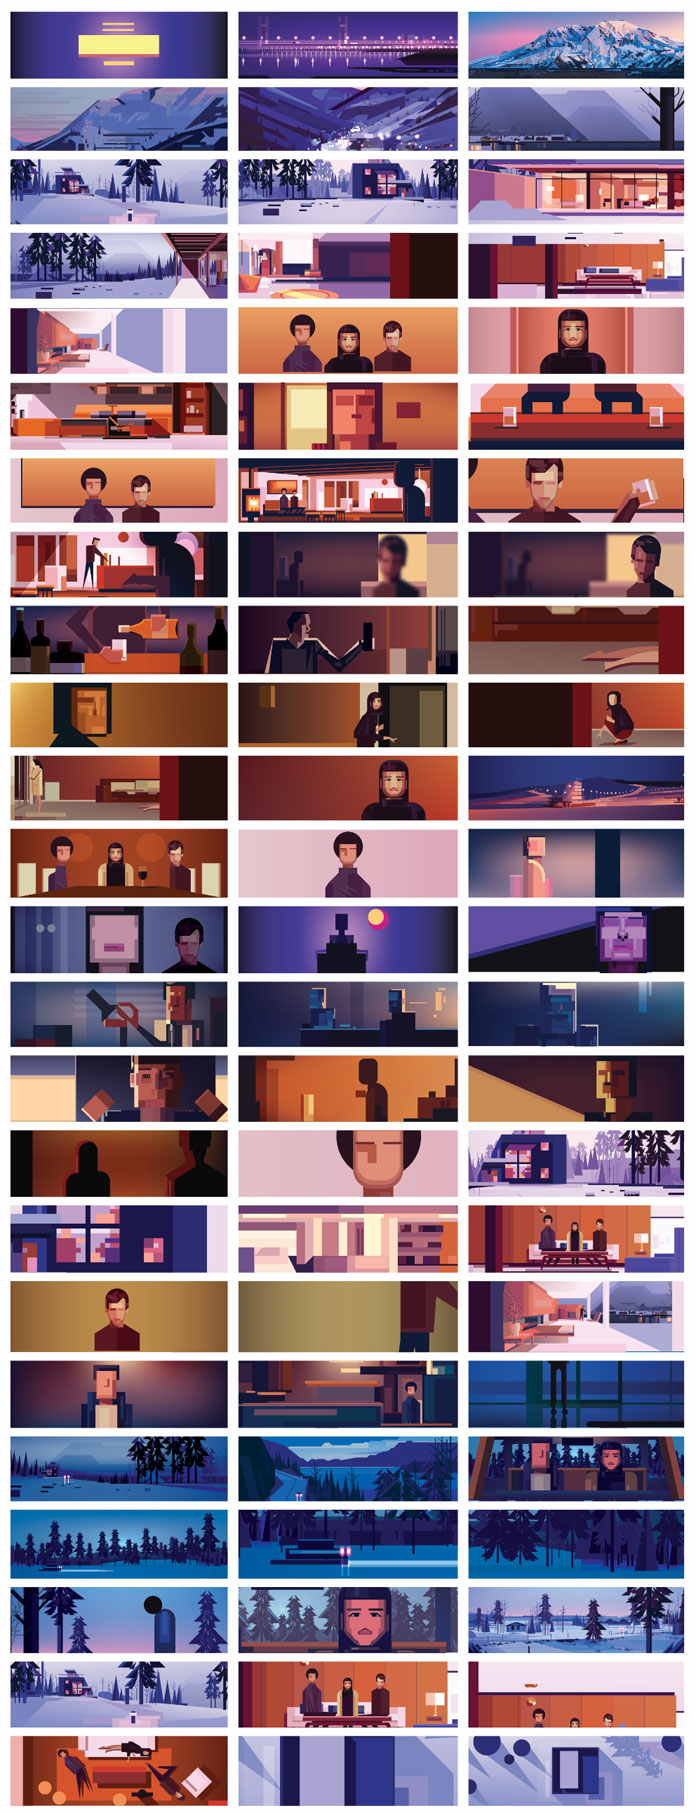 Stills from the Fassine 'Gold' music video by James Gilleard and Steve Kirby.